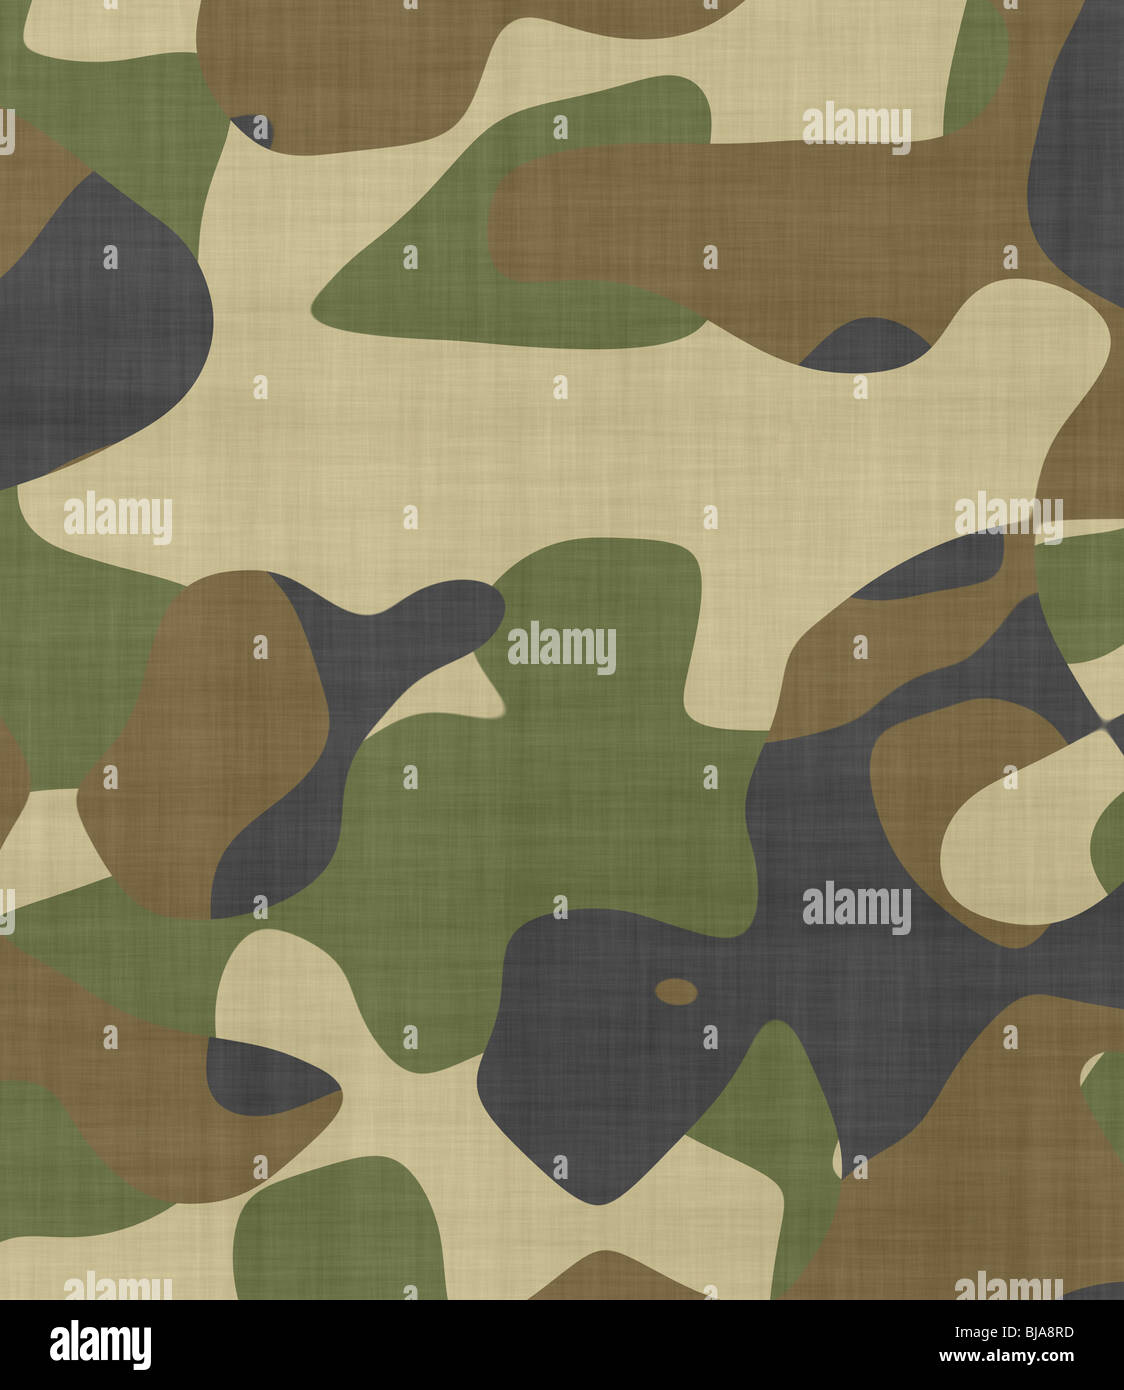 great image of camouflage fabric with space for text - Stock Image